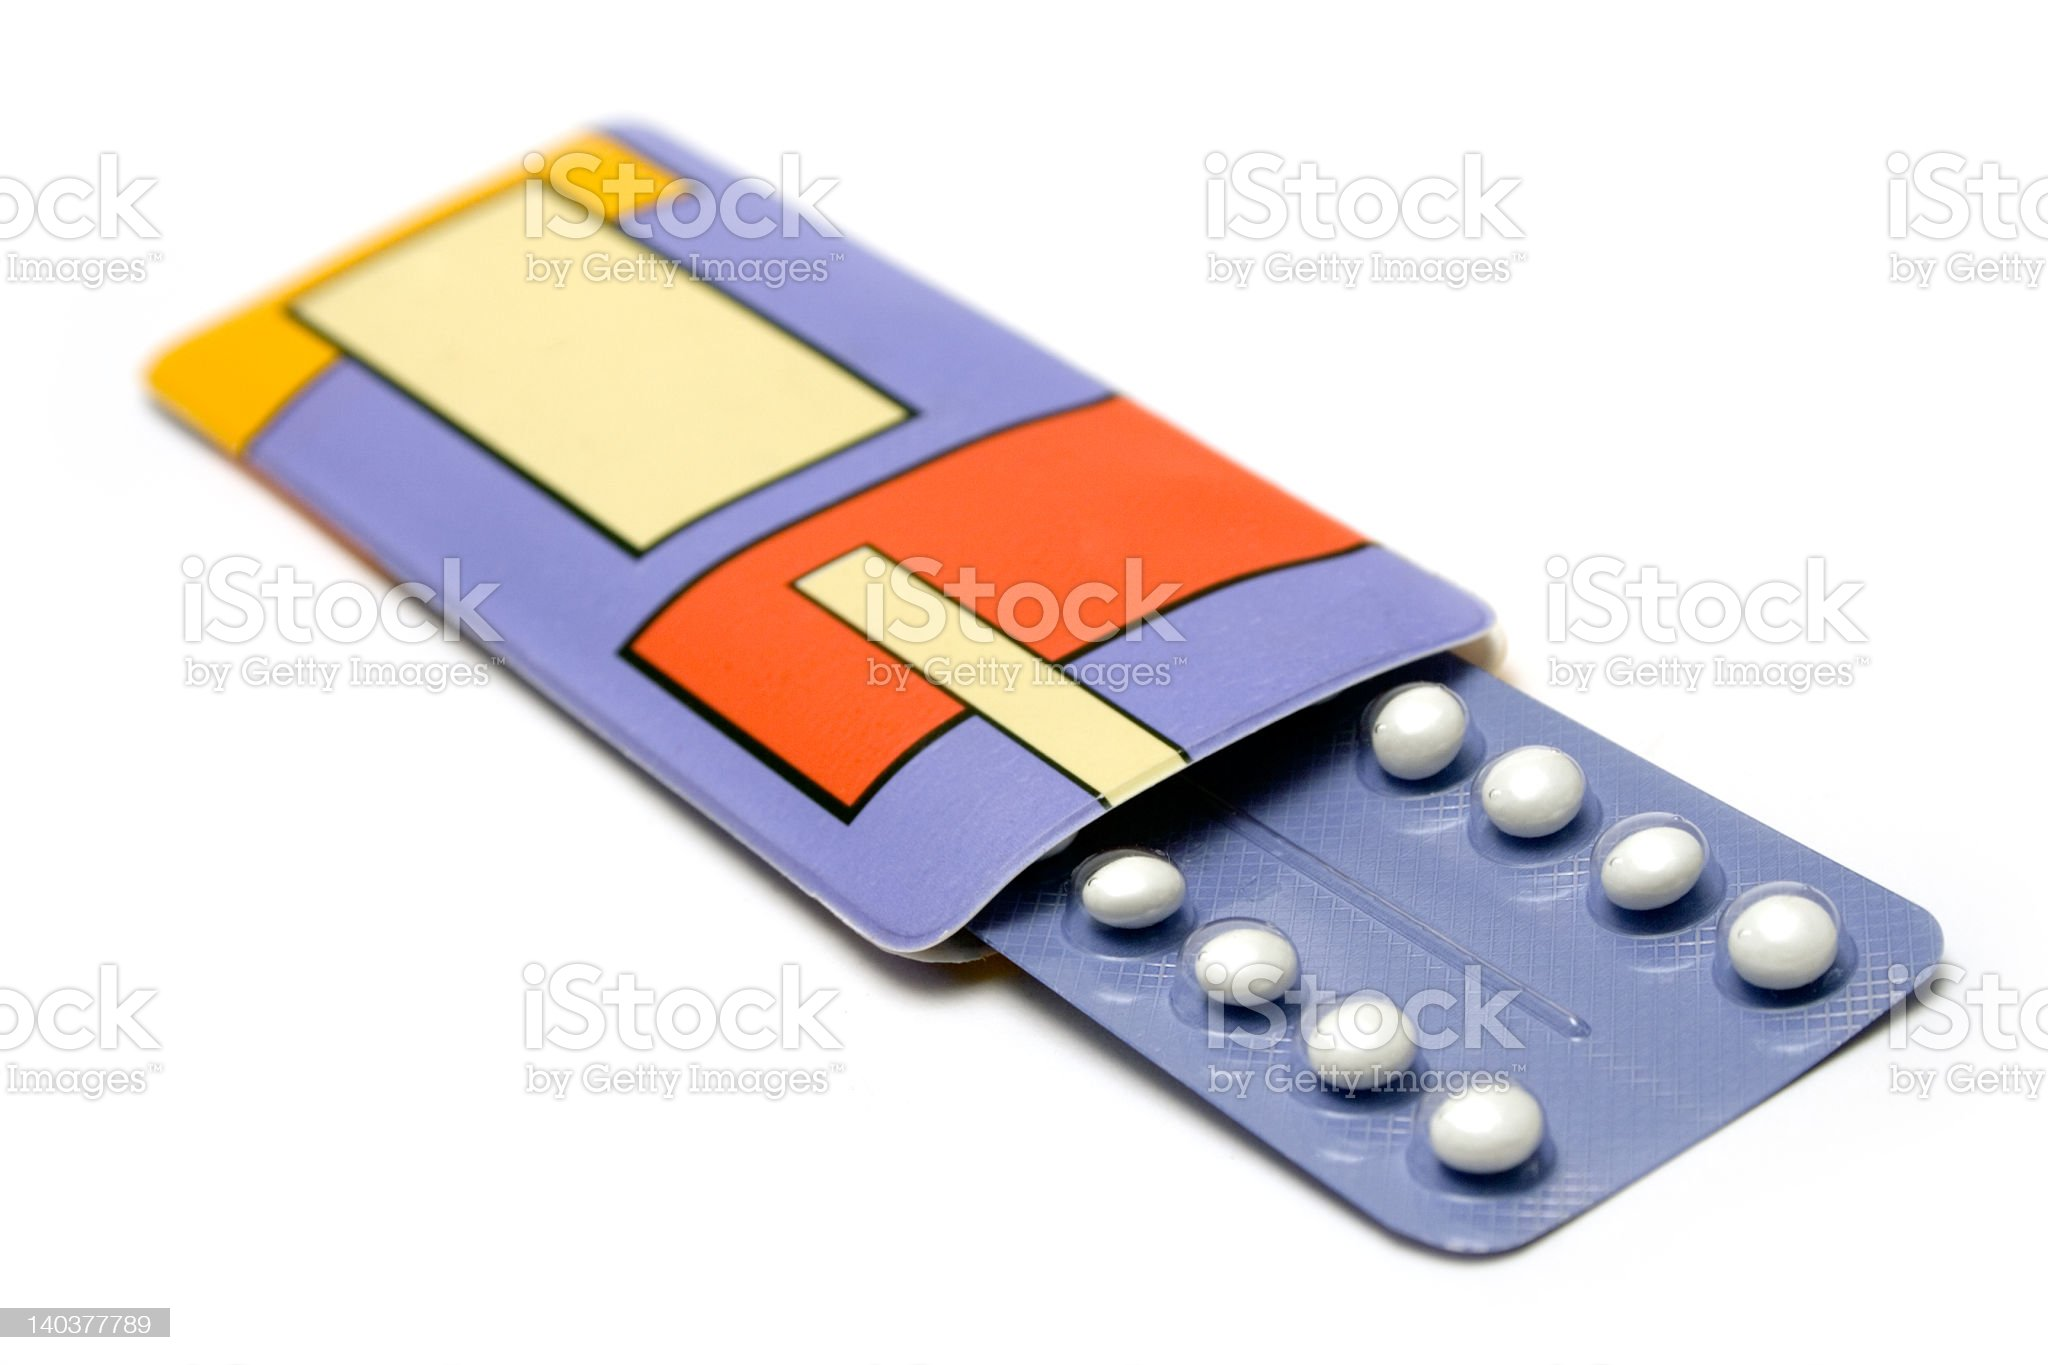 Pack of Birth Control Pills royalty-free stock photo